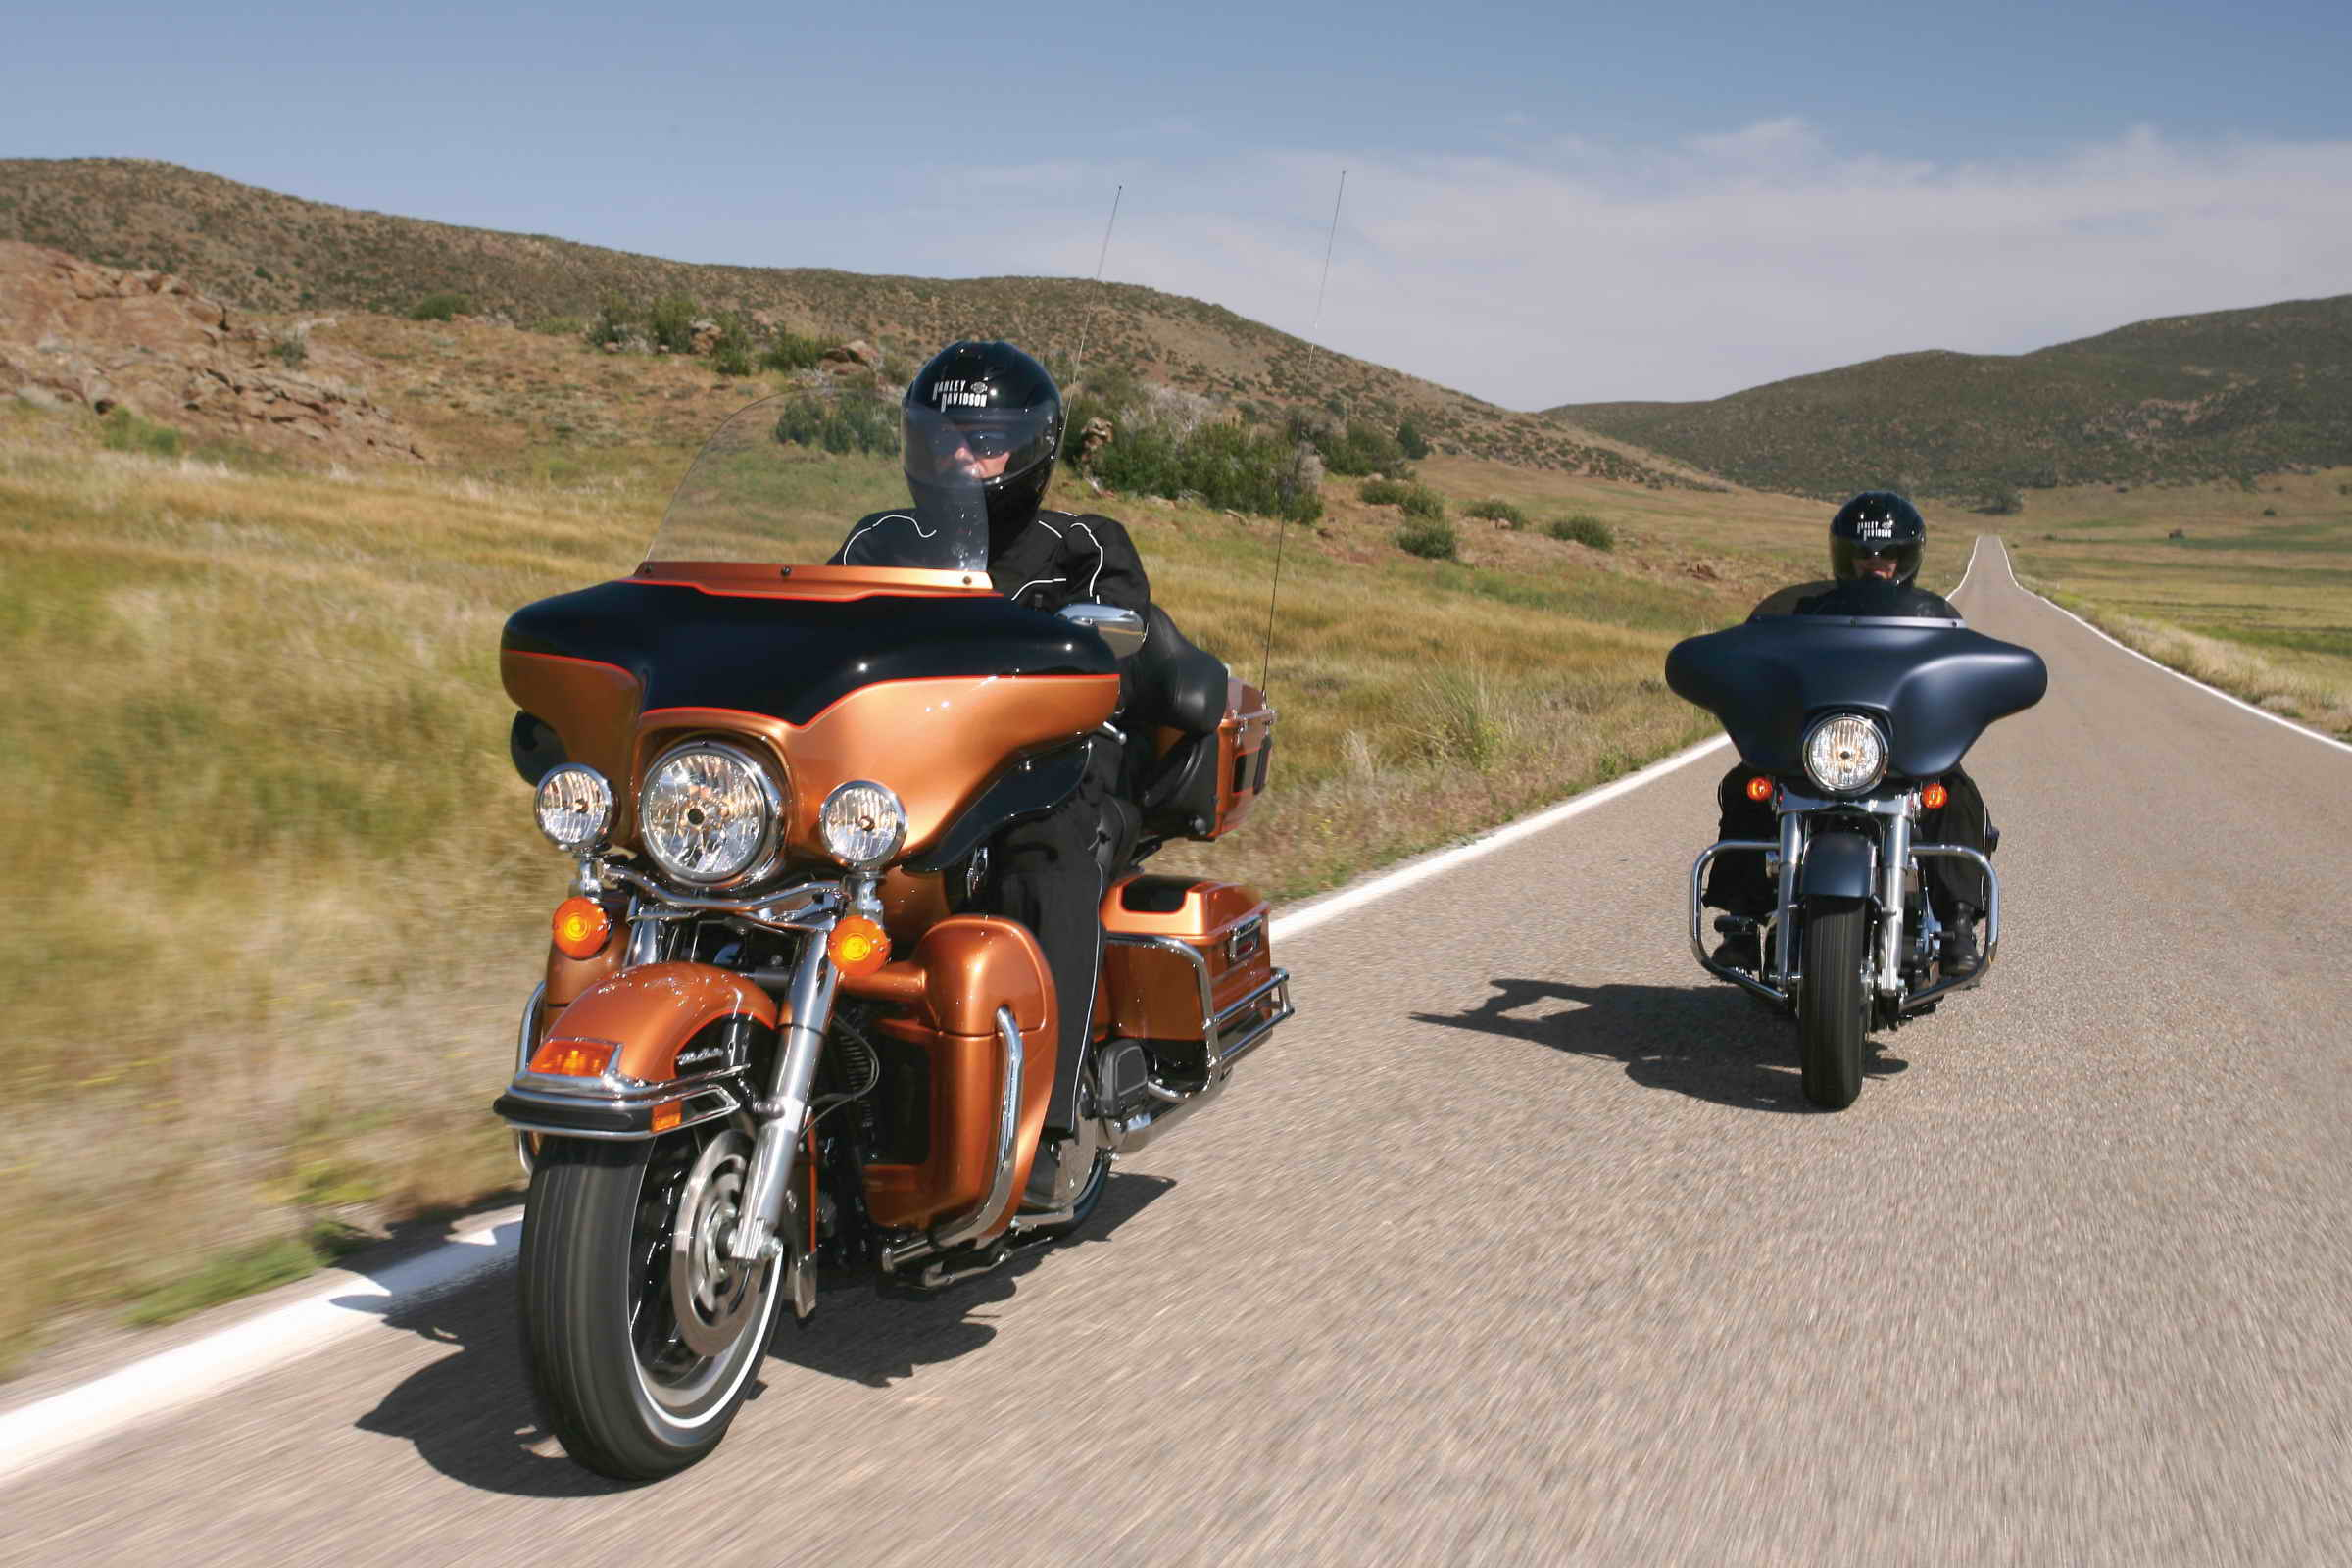 2008 harley davidson touring models a sweet way to ride. Black Bedroom Furniture Sets. Home Design Ideas